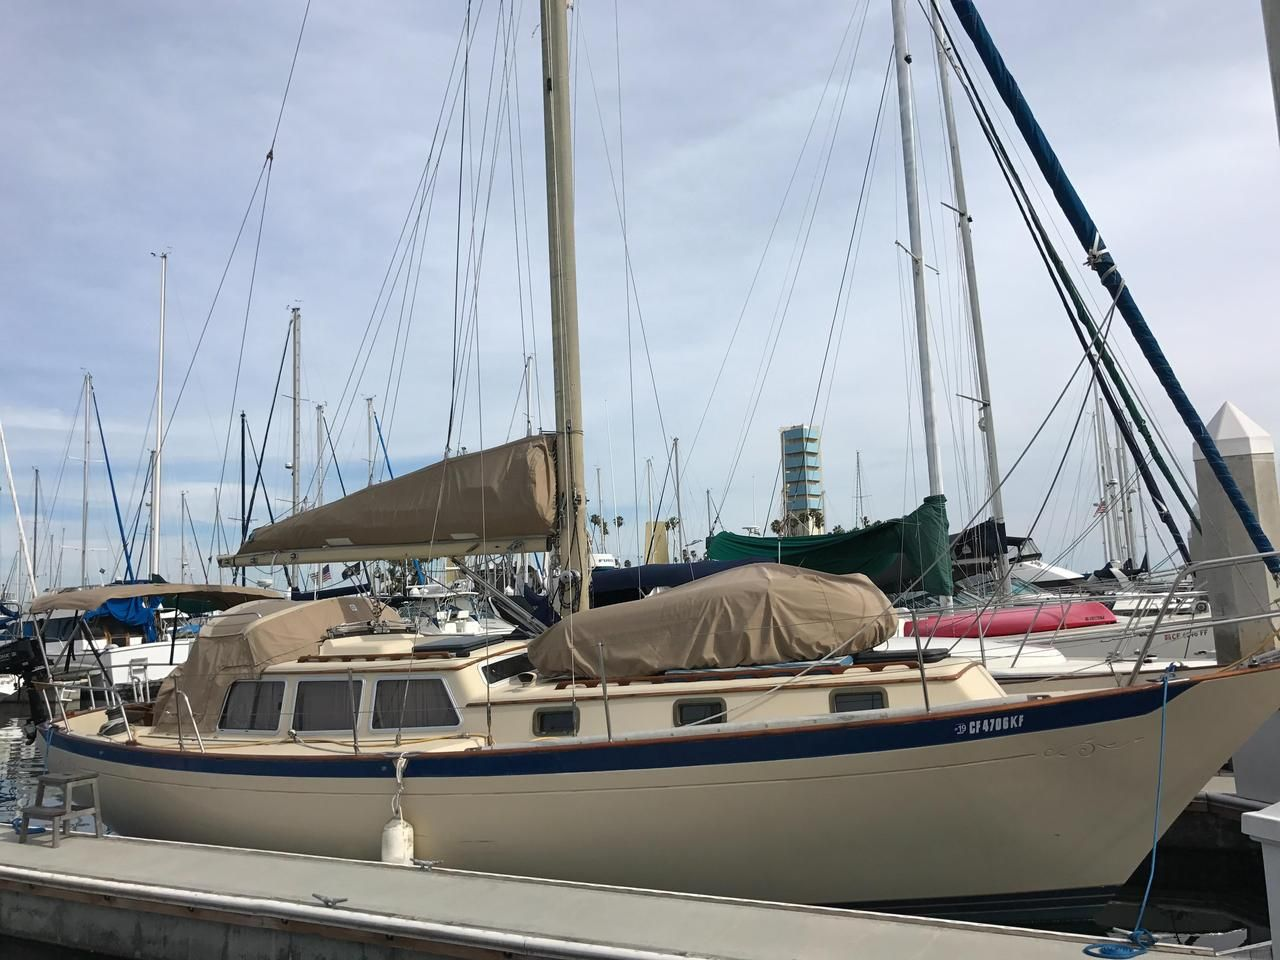 Used Sailboats For Sale >> 1979 35 Used Islander Freeport 36 Plan B Cruiser Sailboat For Sale